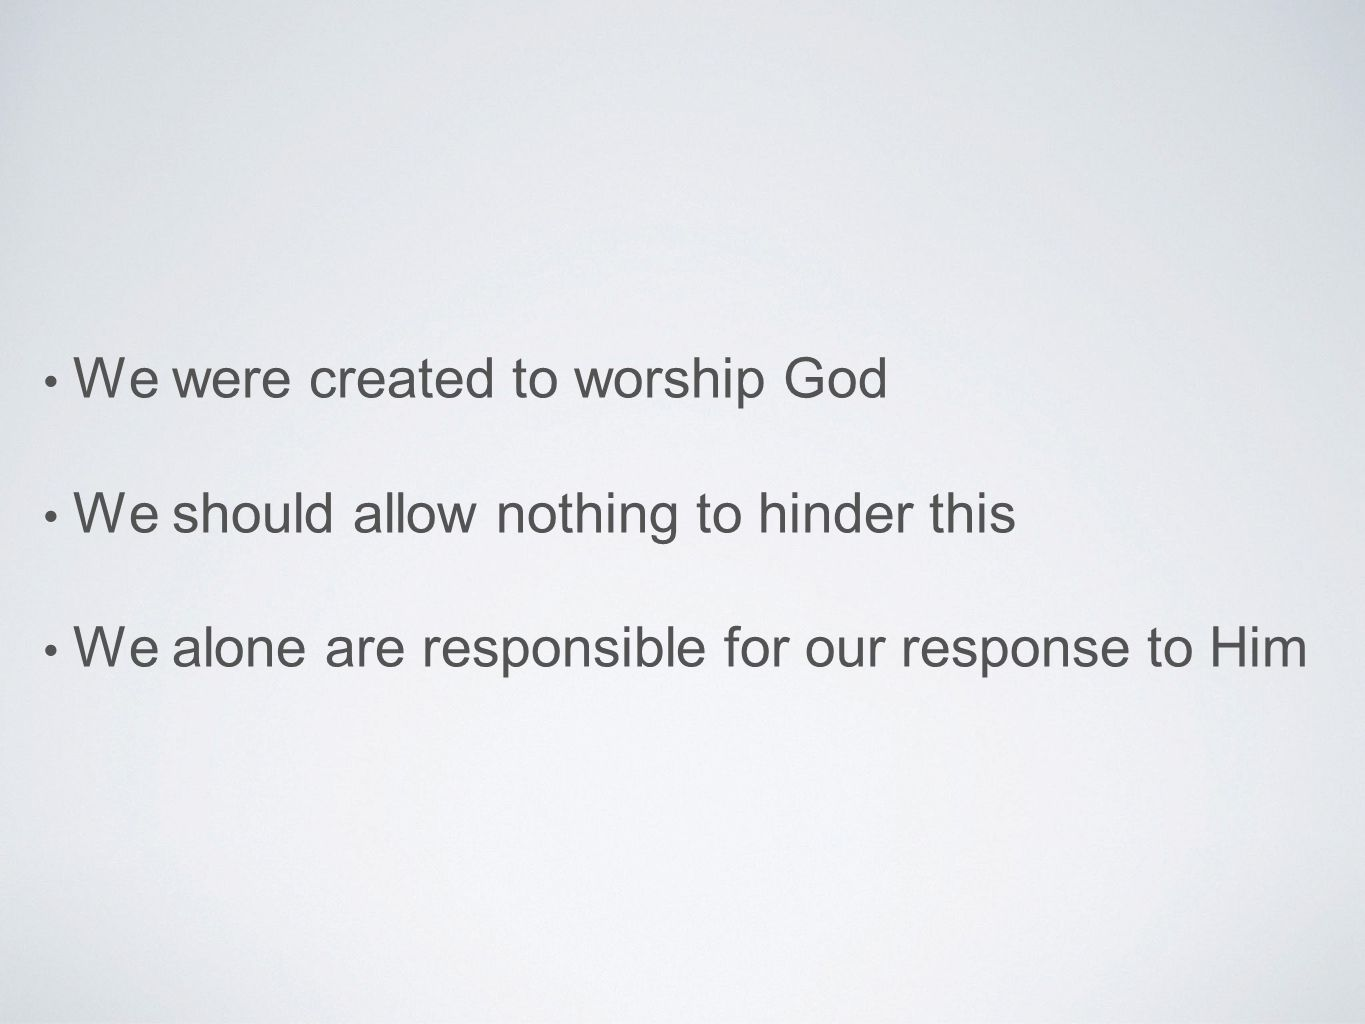 We were created to worship God We should allow nothing to hinder this We alone are responsible for our response to Him